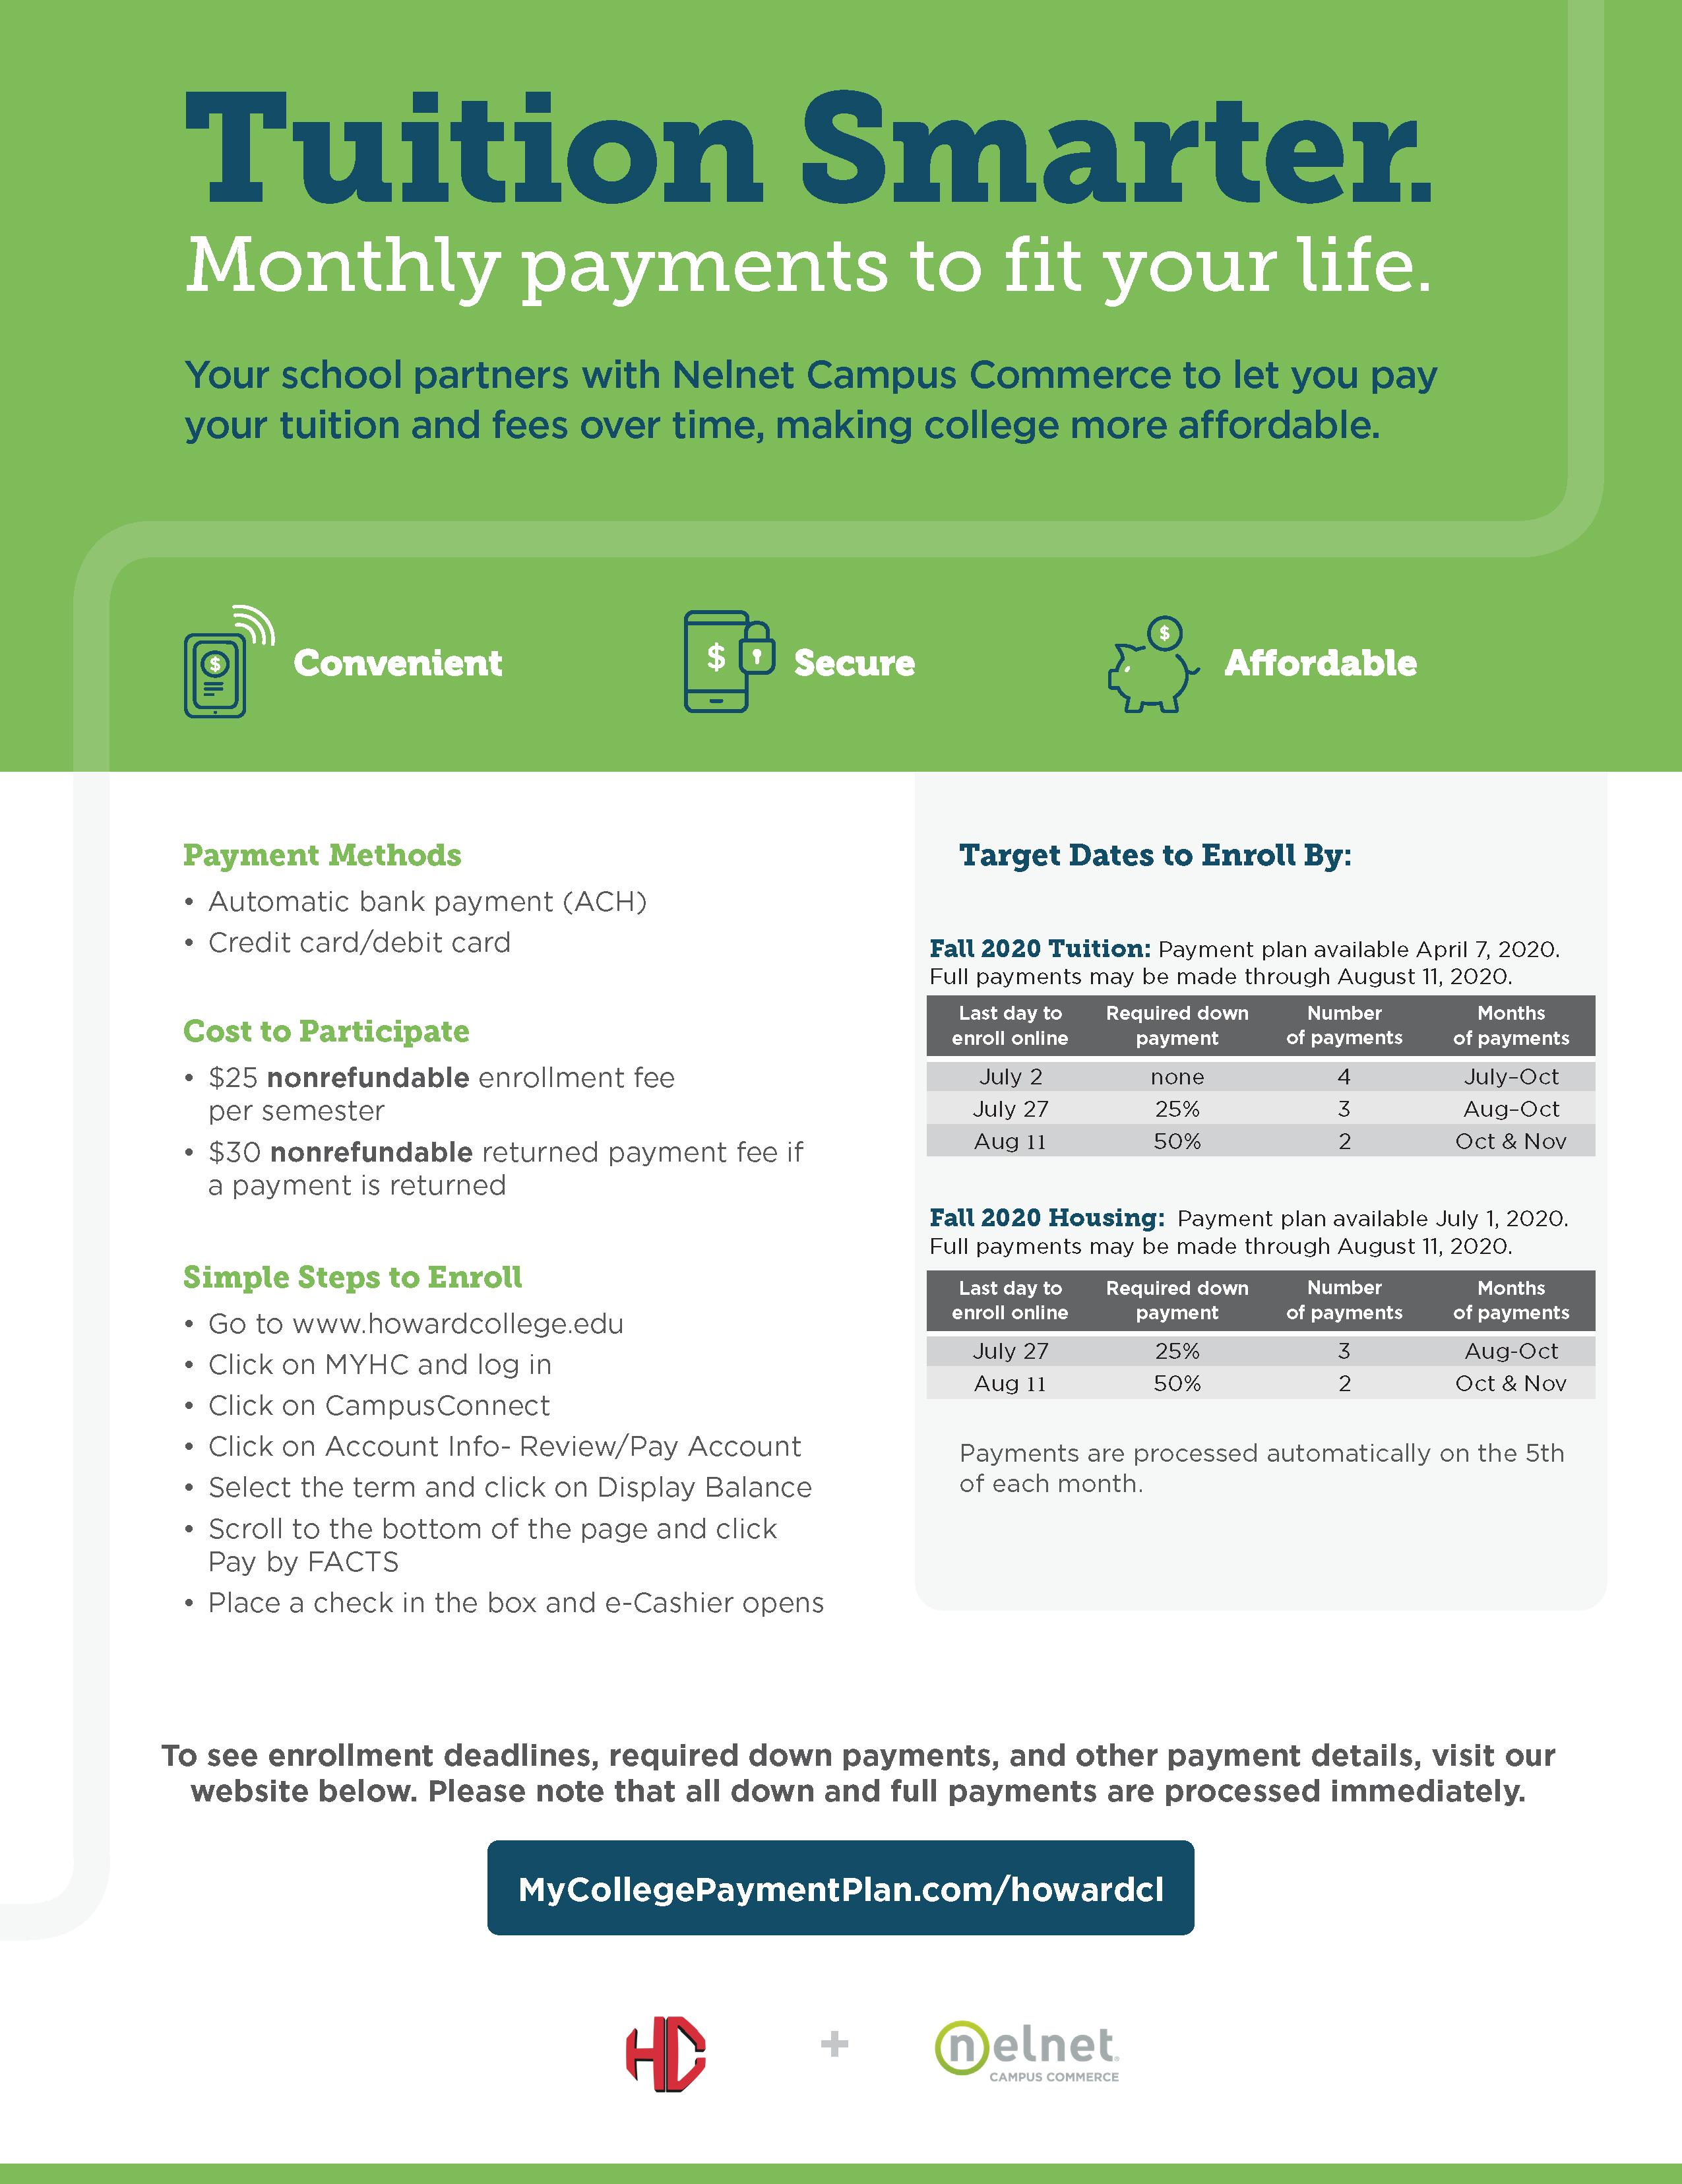 Tuition Smarter flyer discusses Payment Methods, Cost to Participate, and Simple Steps to Enroll